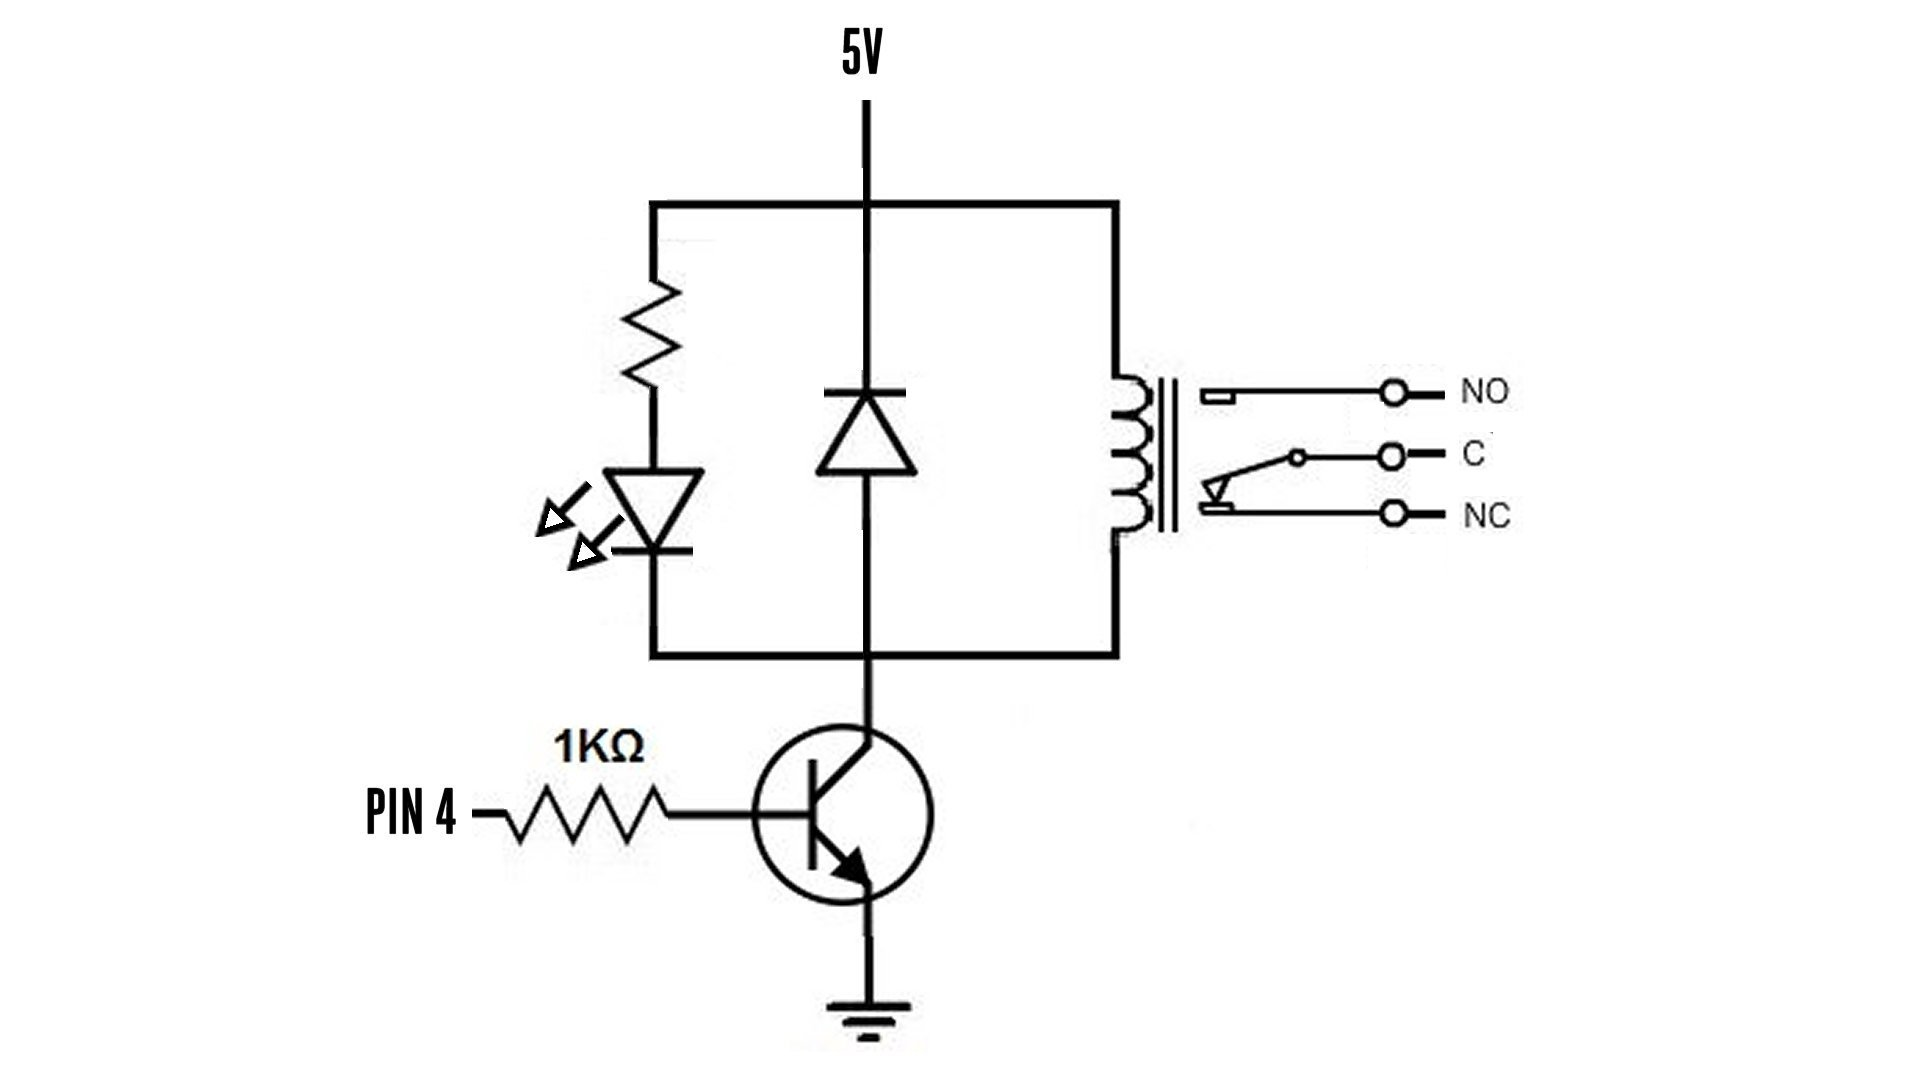 basic relay driver circuit